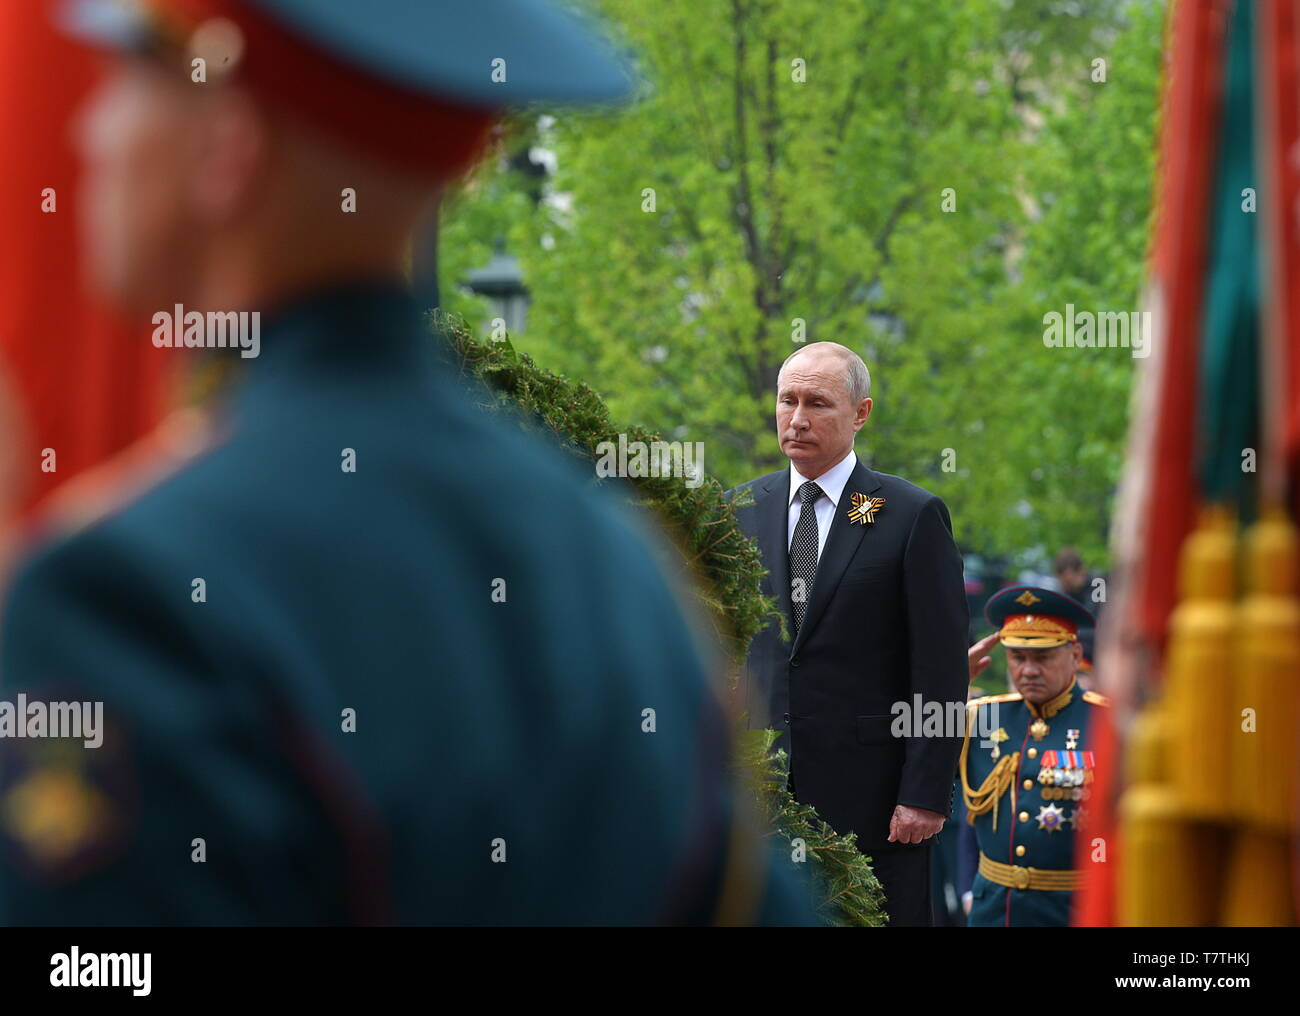 Moscow, Russia. 09th May, 2019. MOSCOW, RUSSIA - MAY 9, 2019: Russia's President Vladimir Putin and Russia's Defence Minister Sergei Shoigu (L-R centre) during a ceremony to lay flowers at the Tomb of the Unknown Soldier by the Kremlin Wall during celebrations marking the 74th anniversary of the victory of the Soviet Red Army over Nazi Germany in the Great Patriotic War of 1941-45, the Eastern Front of the Second World War. Alexei Druzhinin/Russian Presidential Press and Information Office/TASS Credit: ITAR-TASS News Agency/Alamy Live News - Stock Image